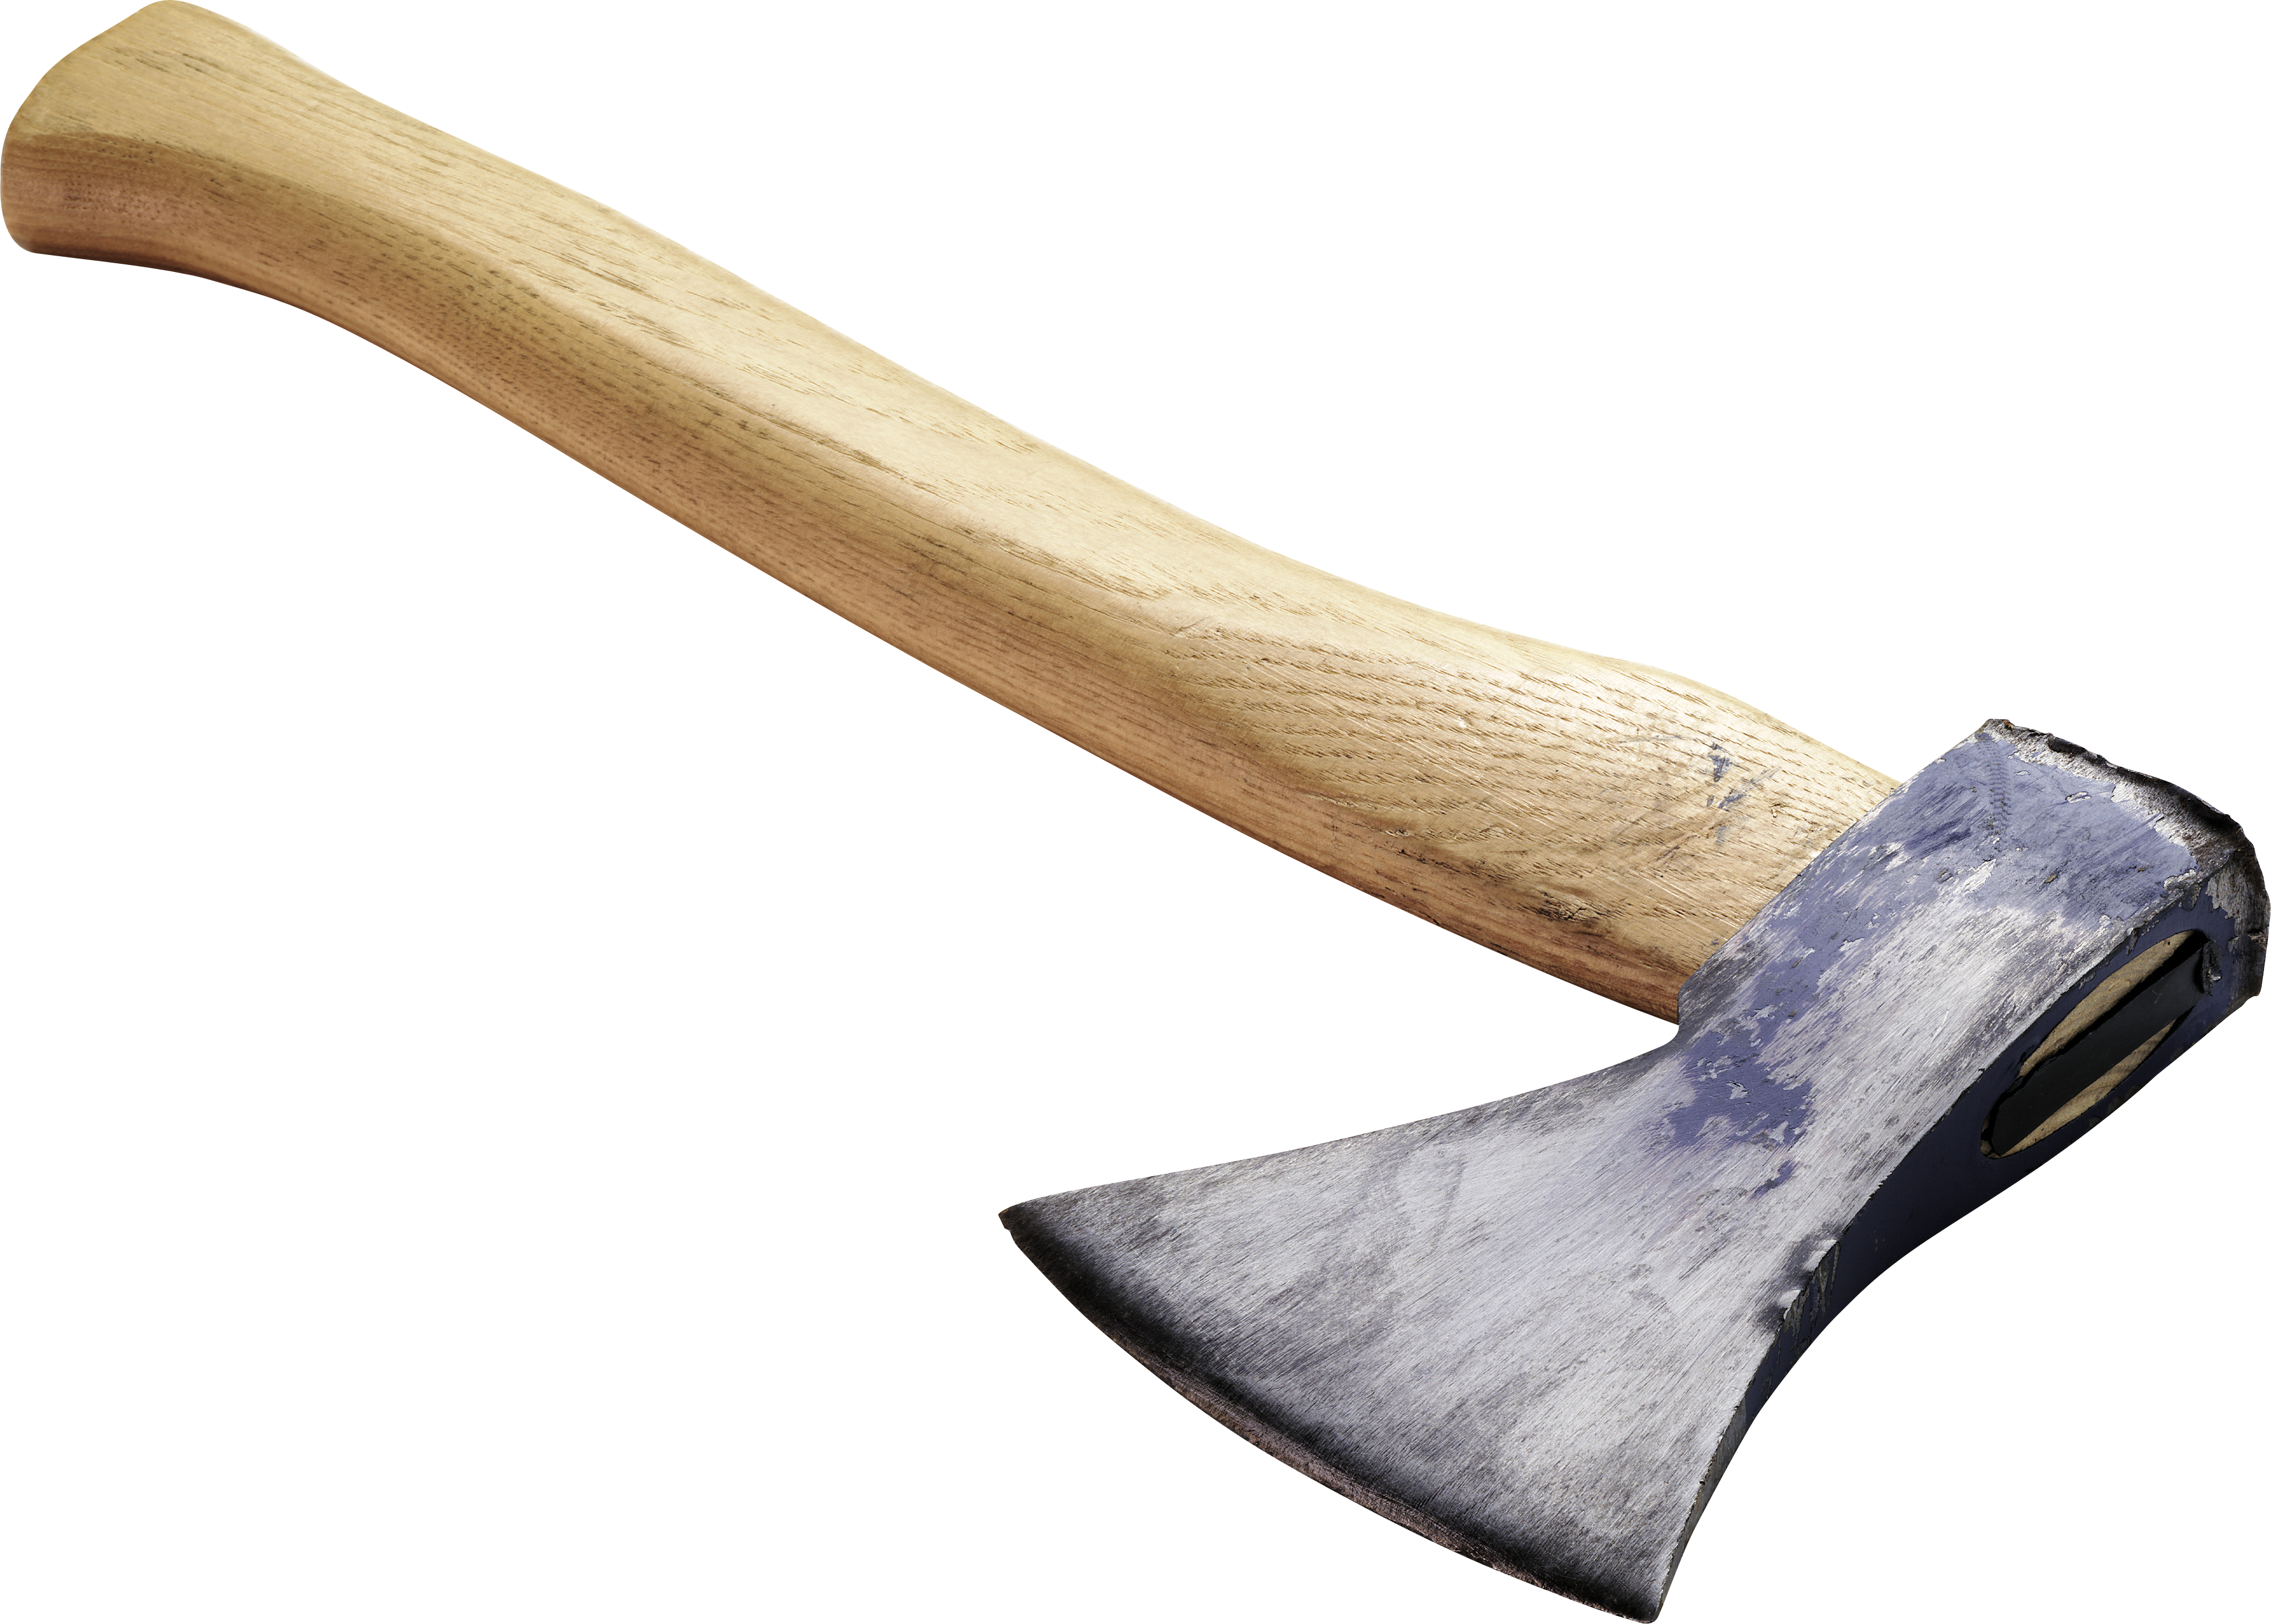 Ax clipart axe. Png image free download